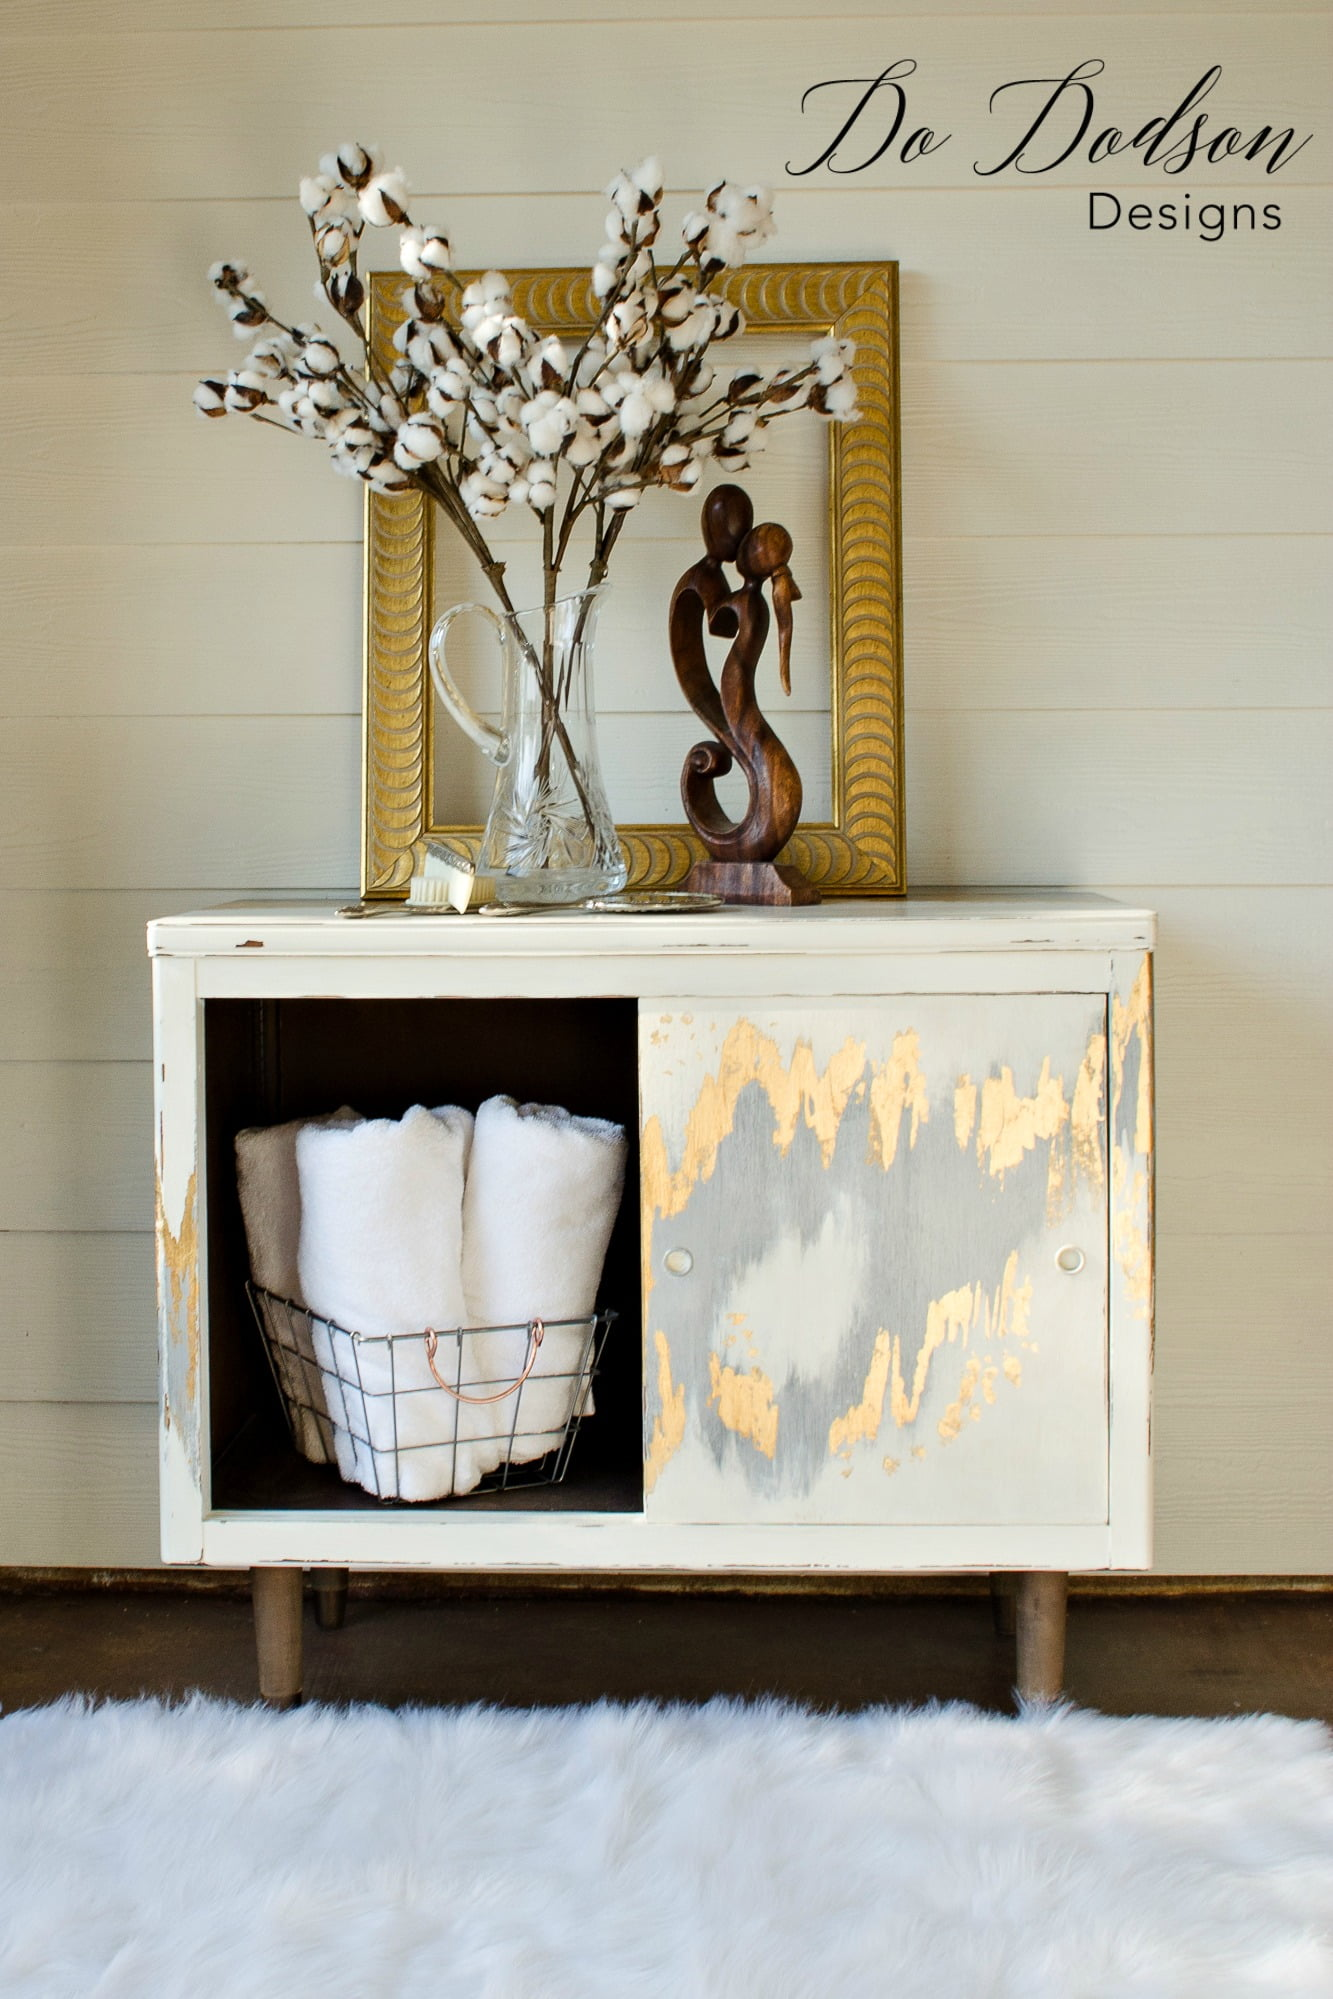 Gold Leaf Furniture That Will Make You Swoon!